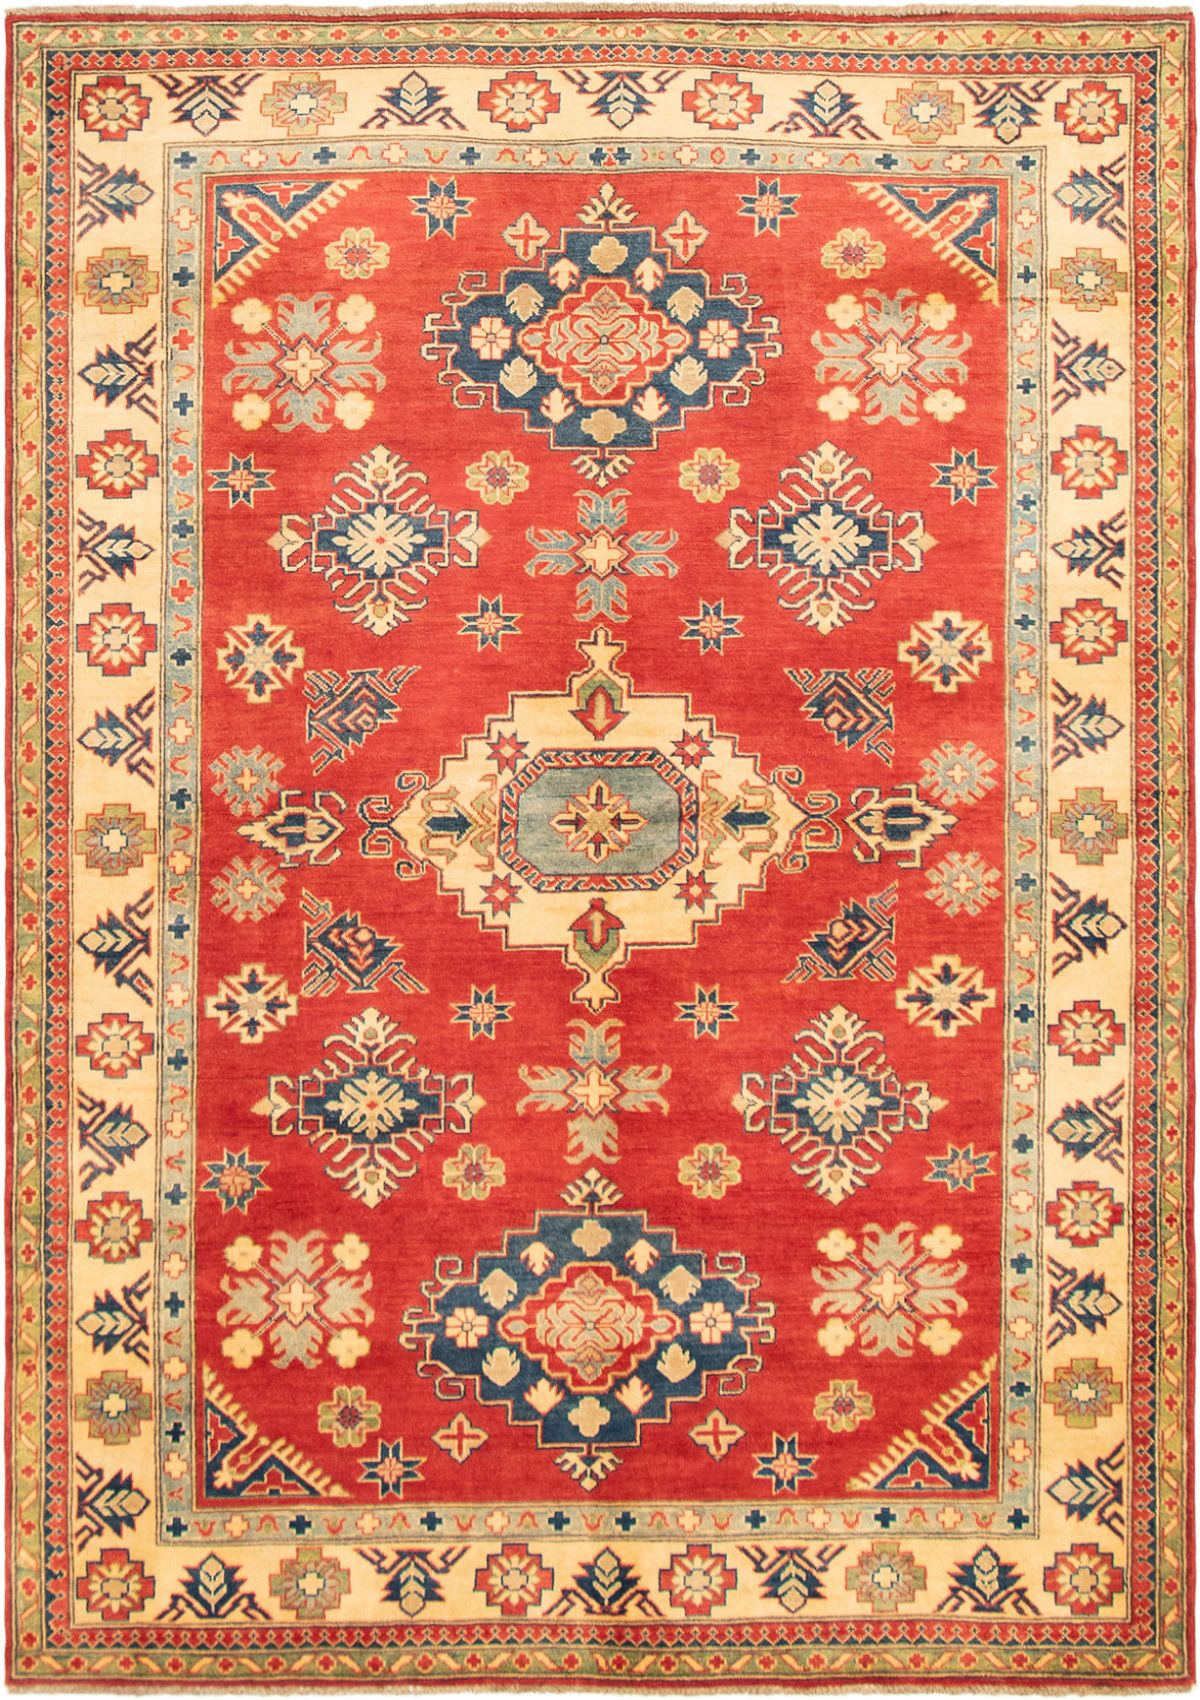 """Hand-knotted Finest Gazni Red Wool Rug 6'4"""" x 8'11"""" Size: 6'4"""" x 8'11"""""""